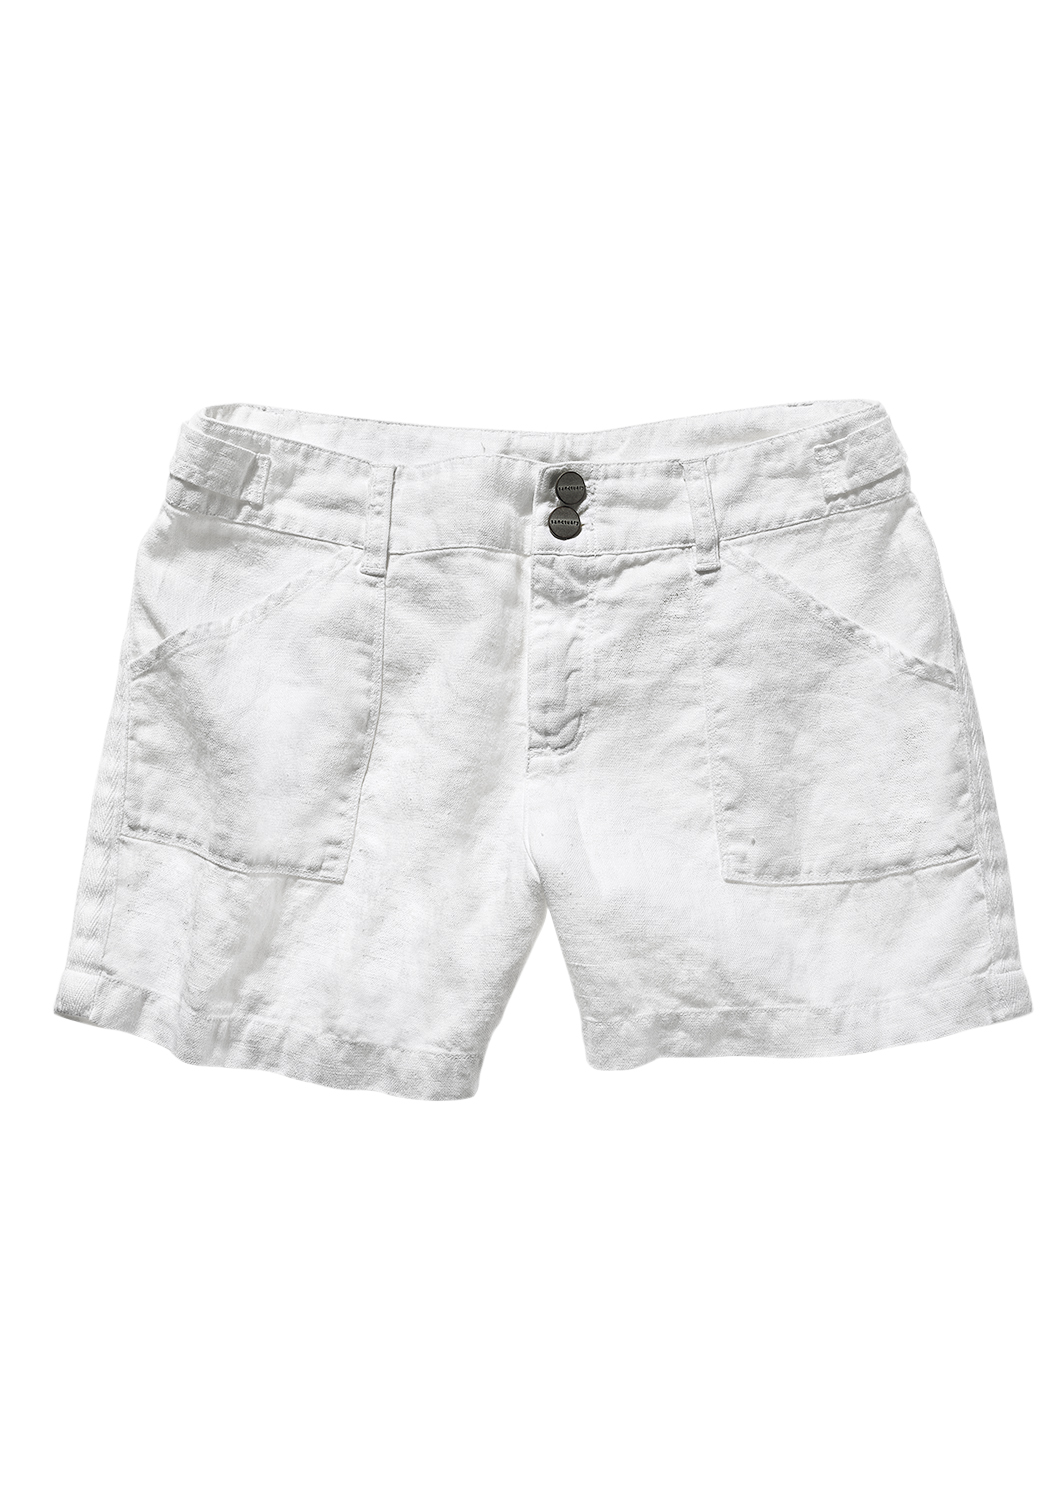 Sanctuary Shorts